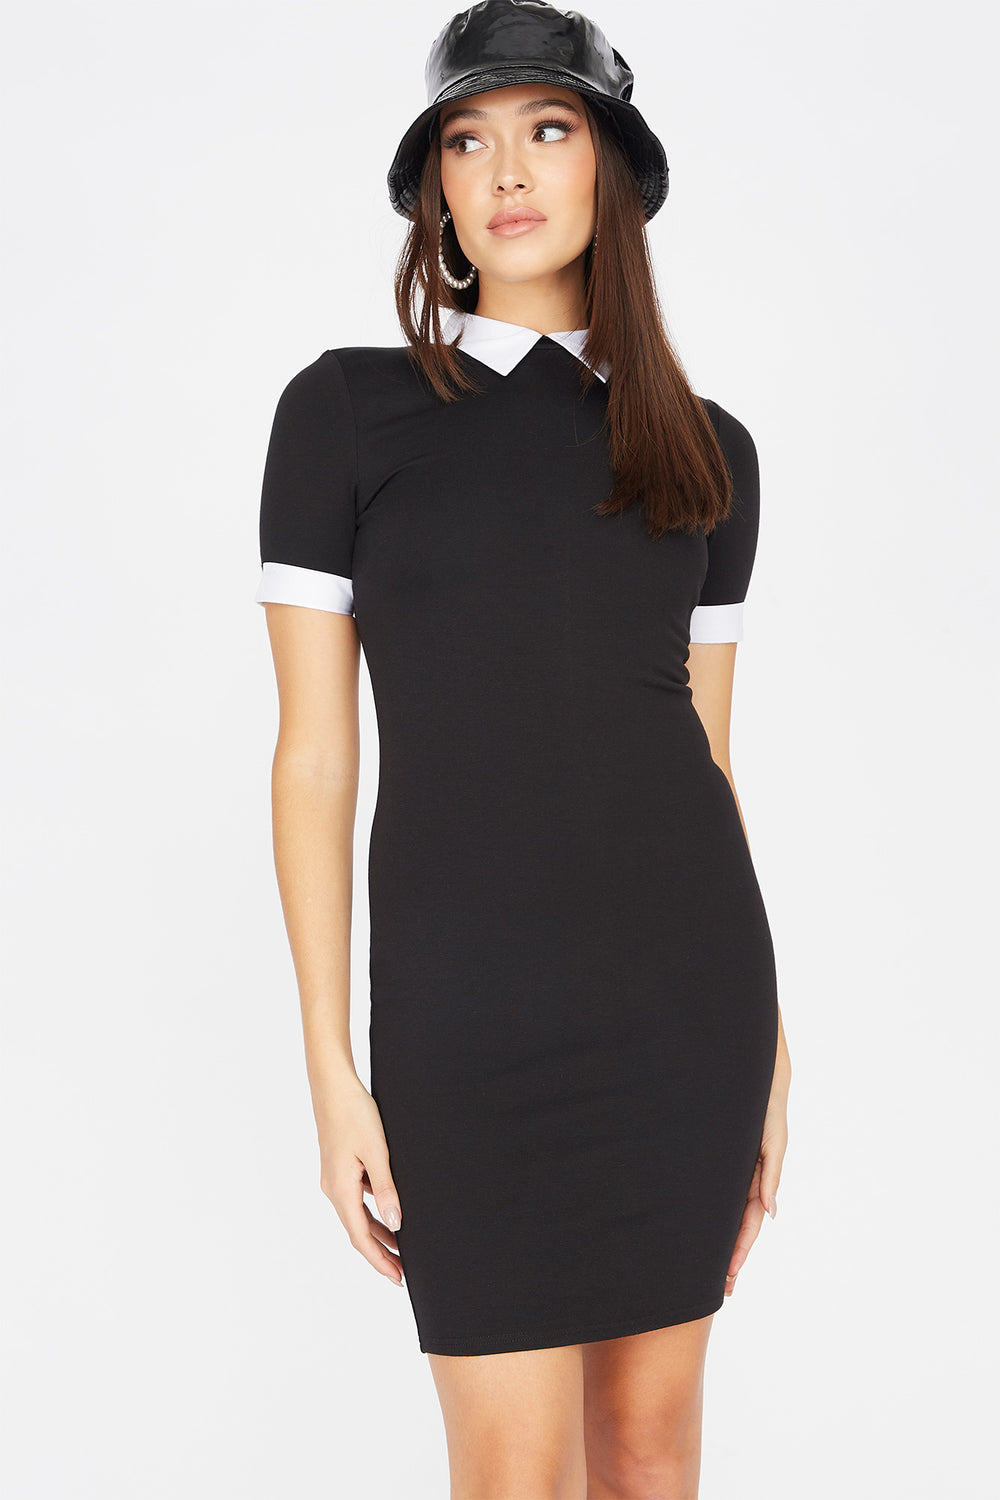 Contrast Collared Short Sleeve Mini Dress Black